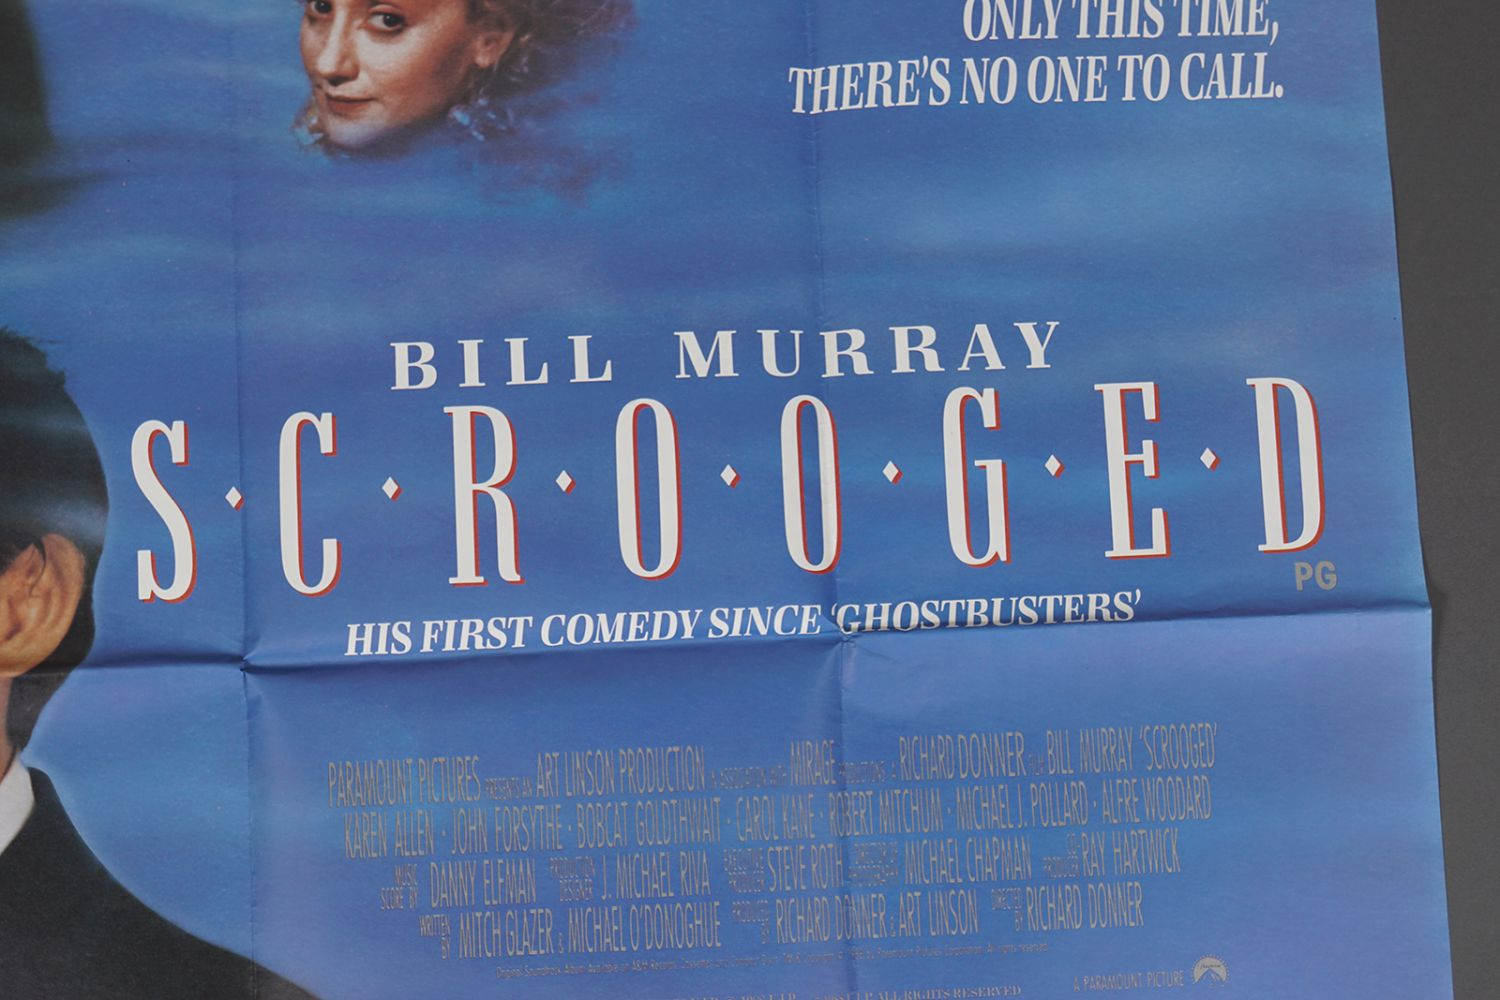 SCROOGED - Image 3 of 4